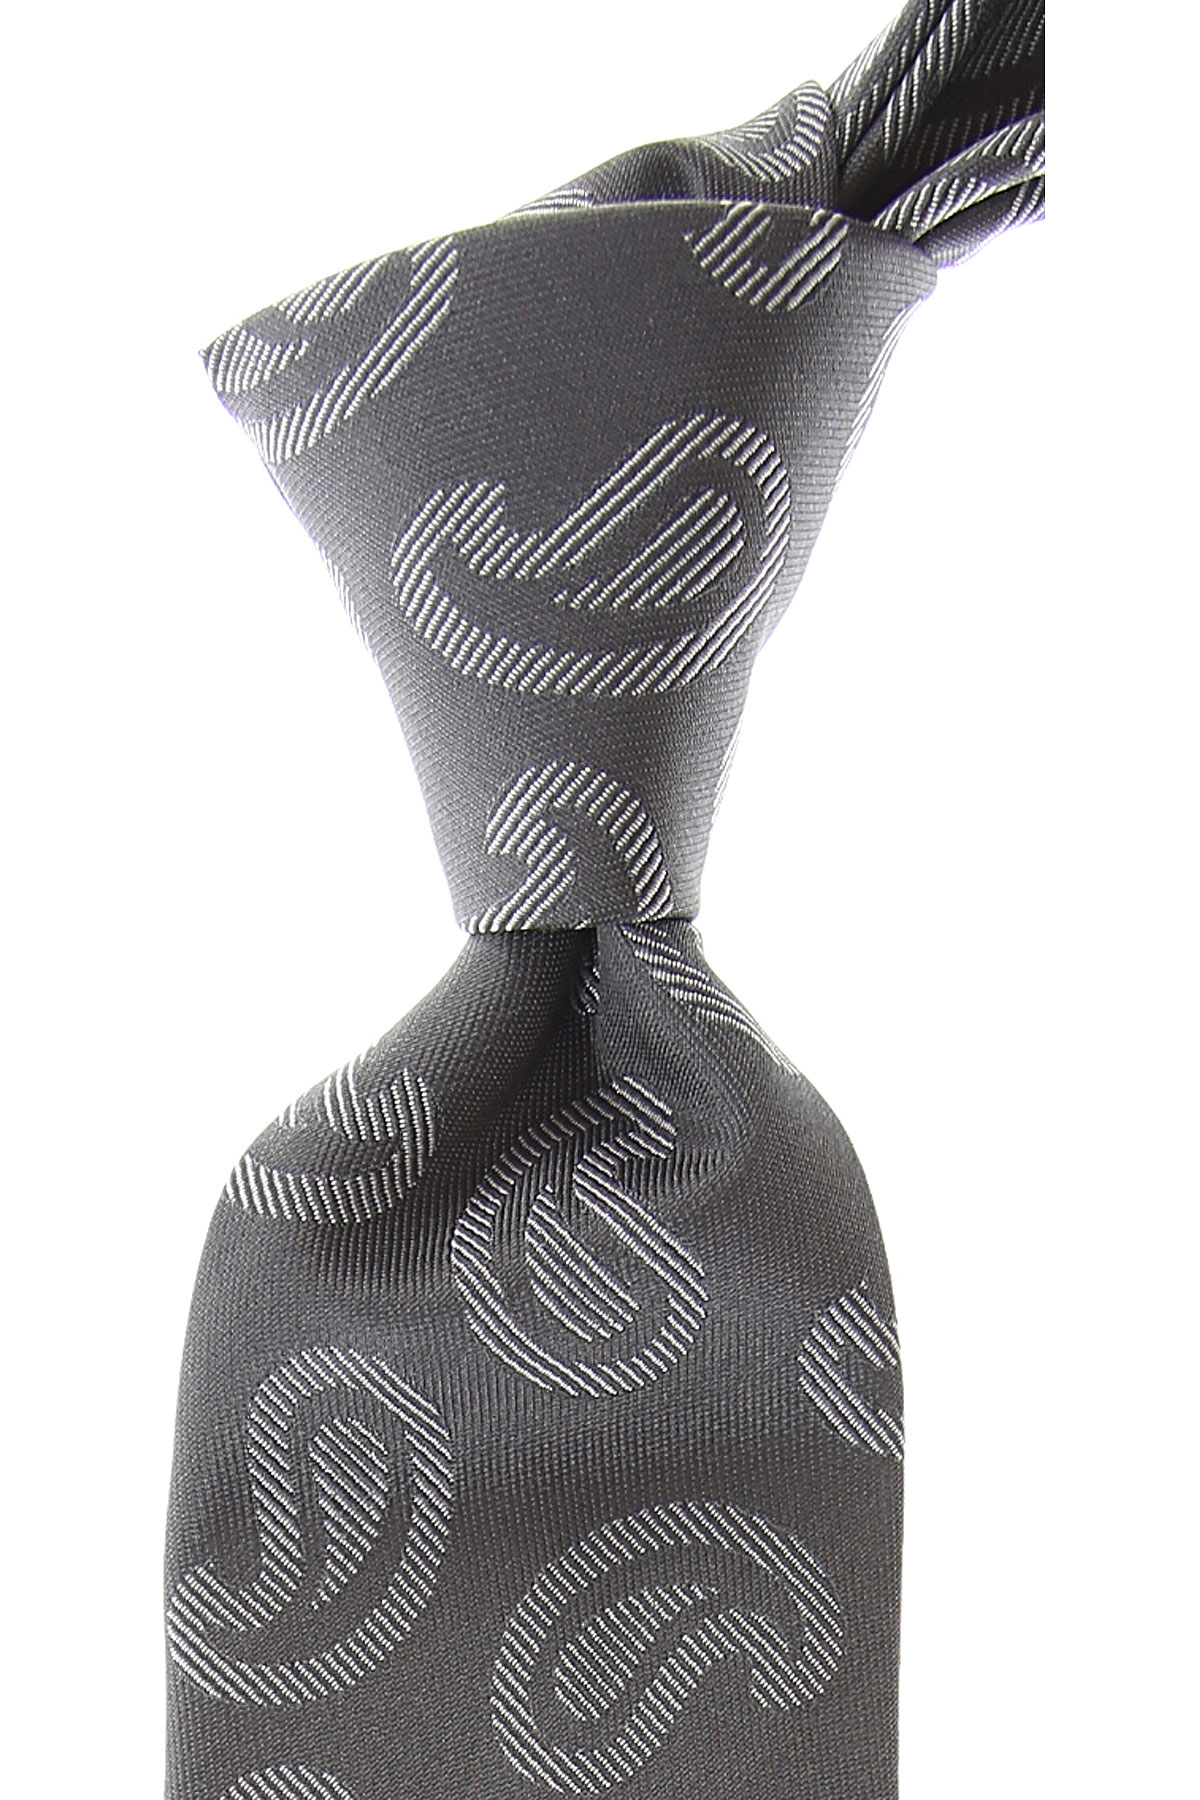 Giorgio_Armani_Ties_On_Sale_Cement_Grey_Silk_2019